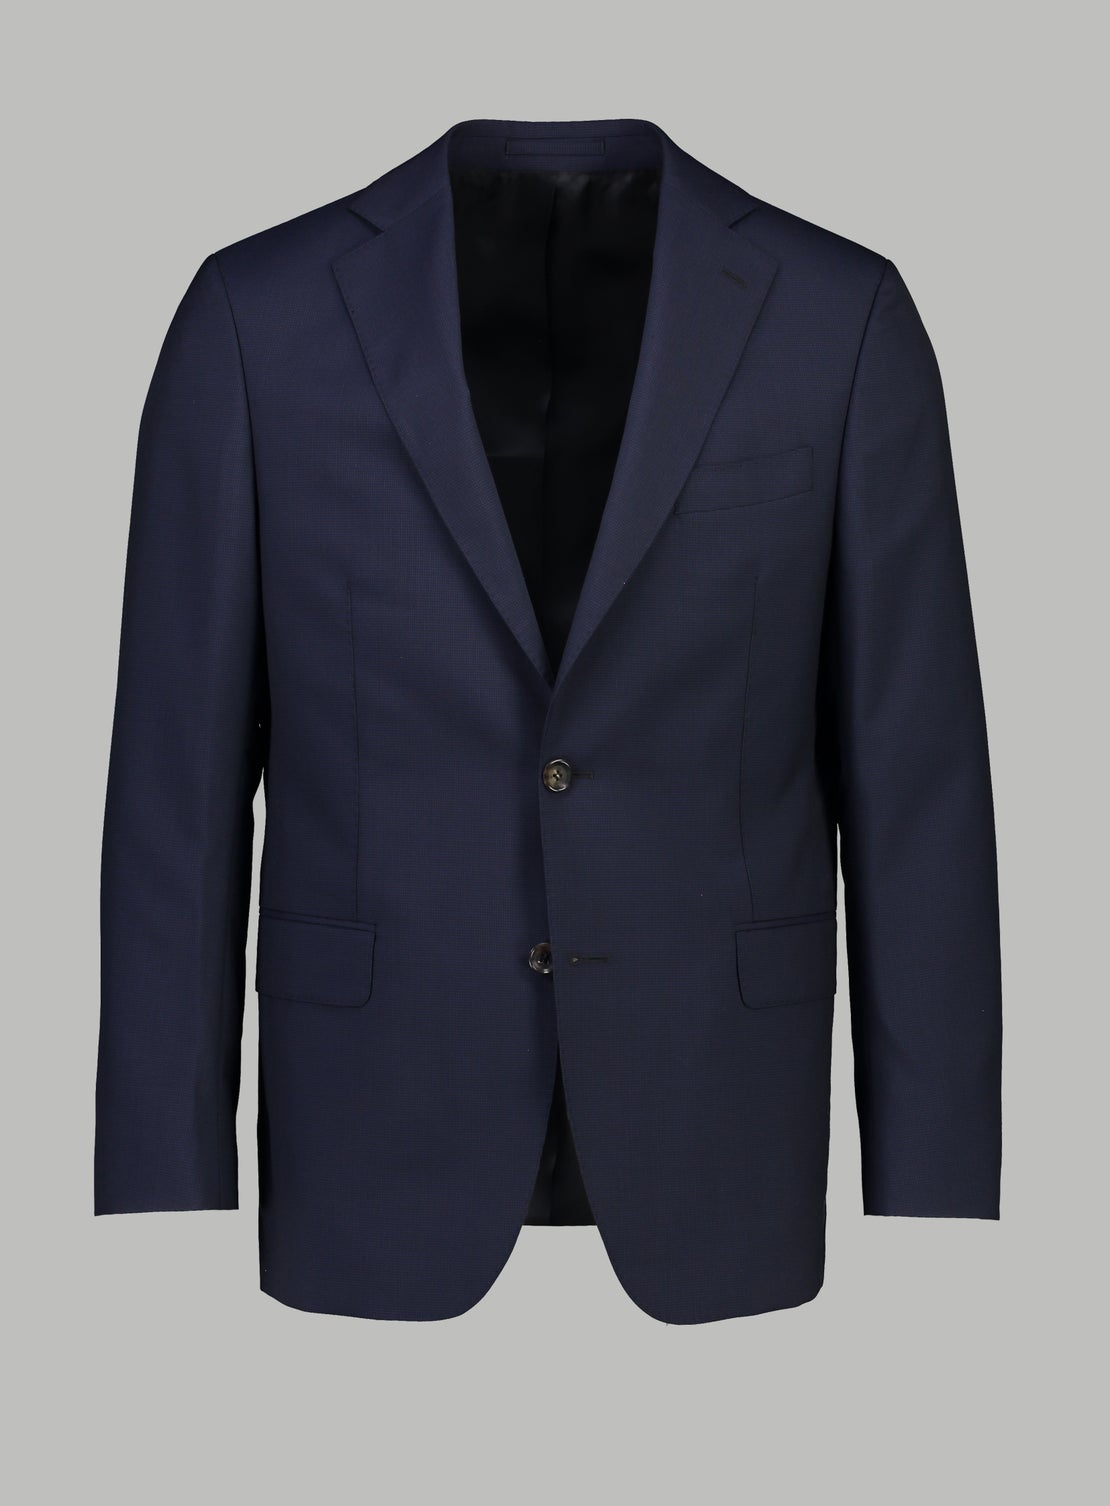 Horst Micro Houndstooth Suit